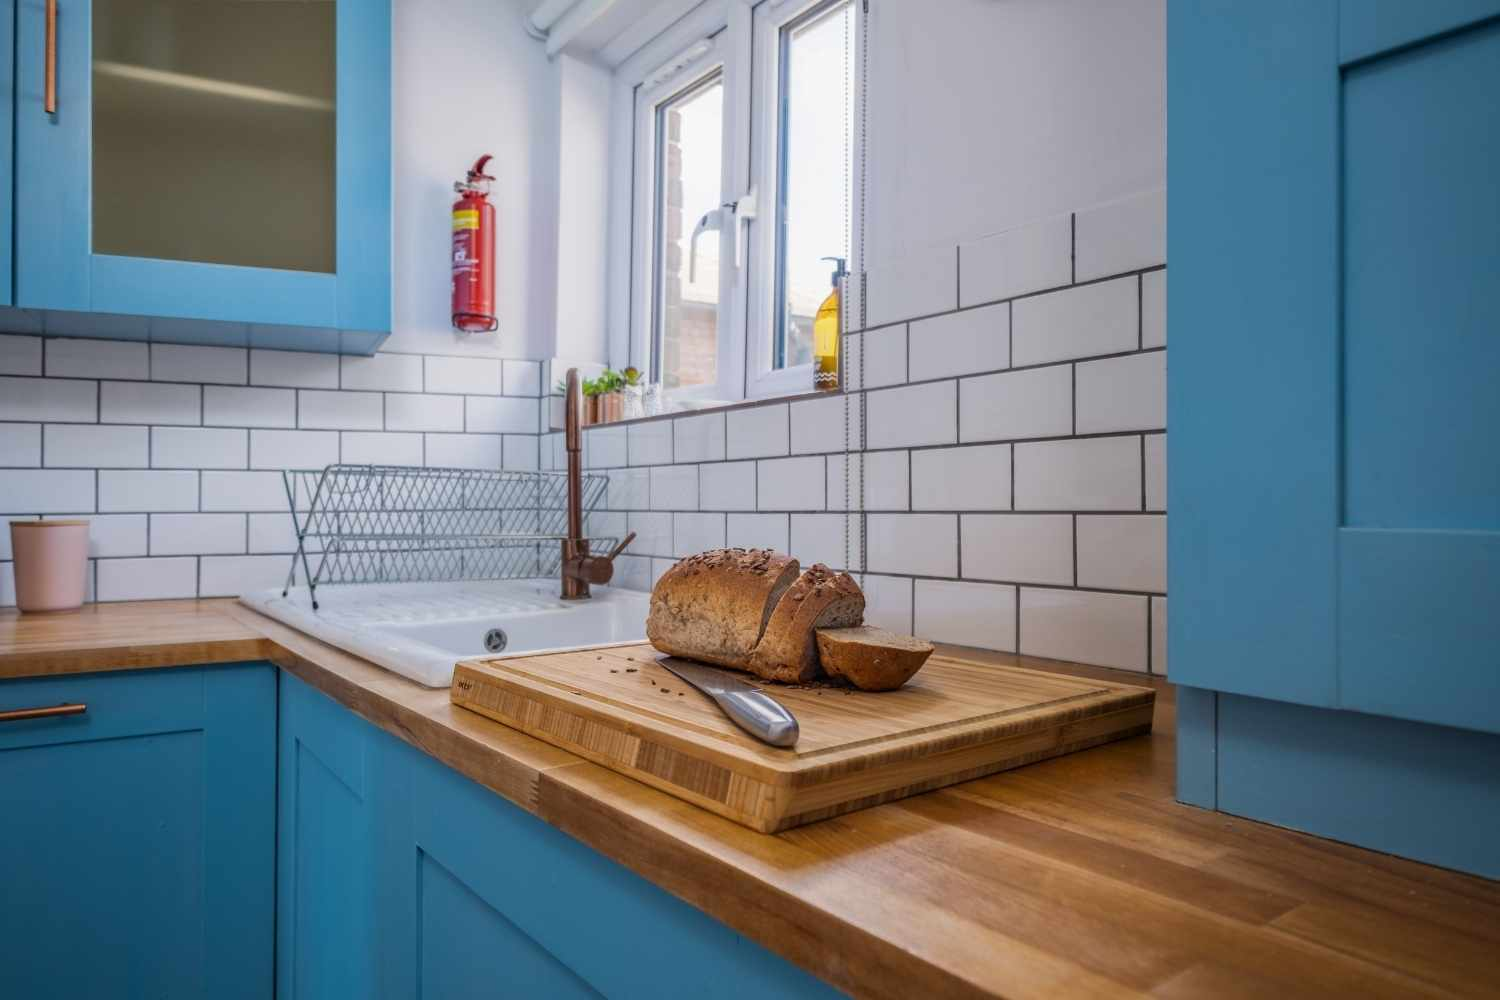 Well equipped and fun kitchen space